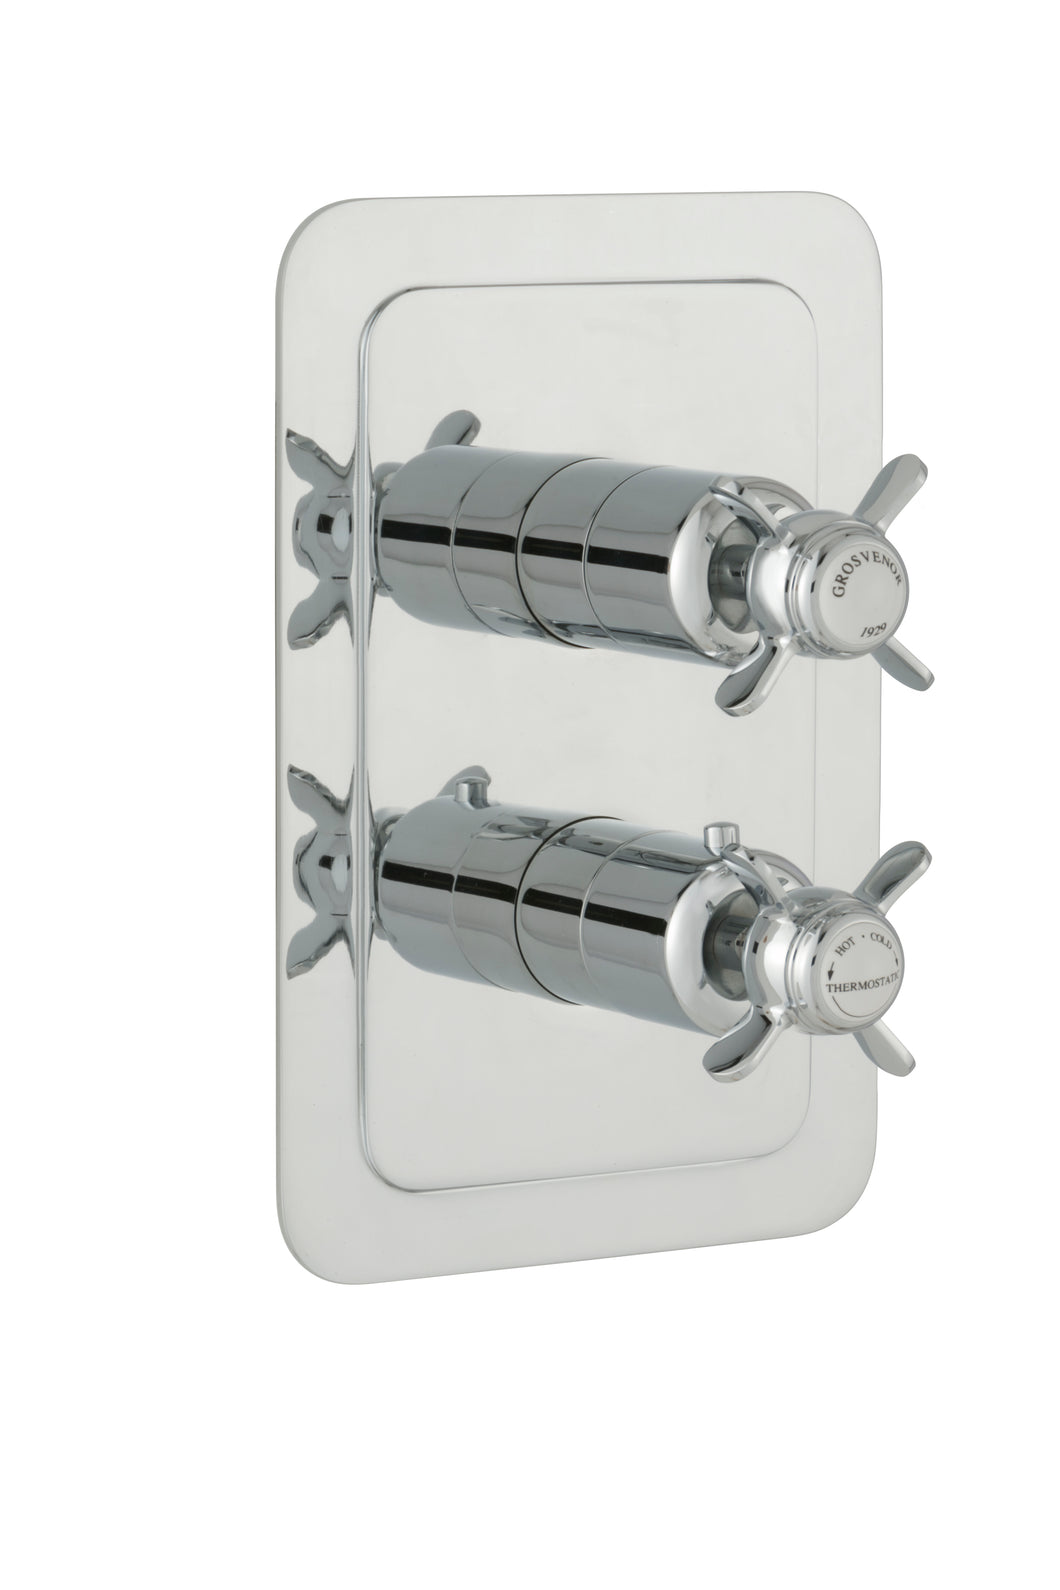 Chester Pinch Thermostatic Conceal 1 Outlet Shower ValveVertical Chrome